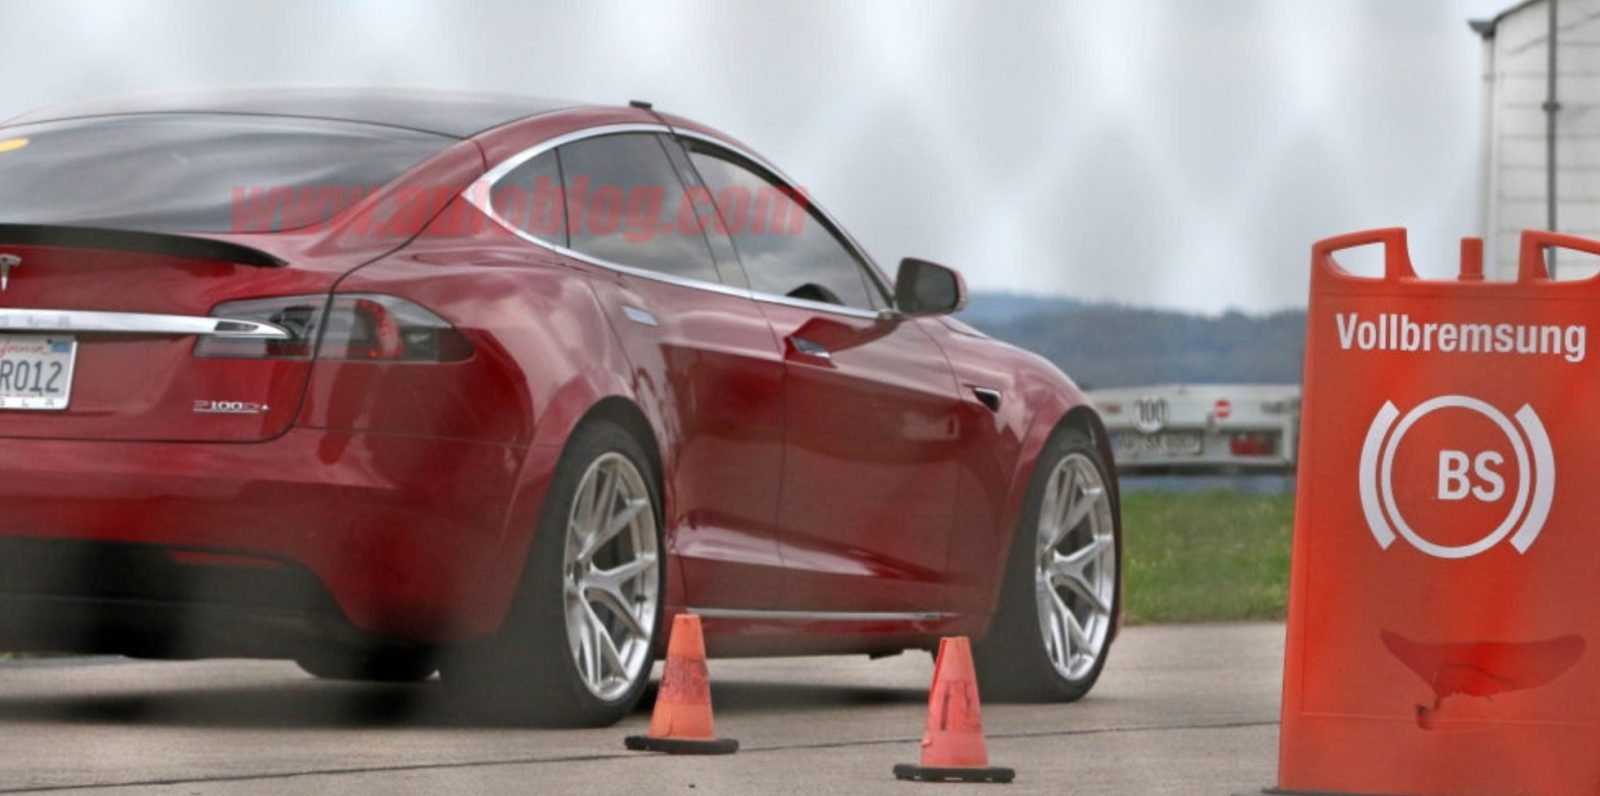 Elon Musk says Tesla's new Model S prototype is a 7 seater